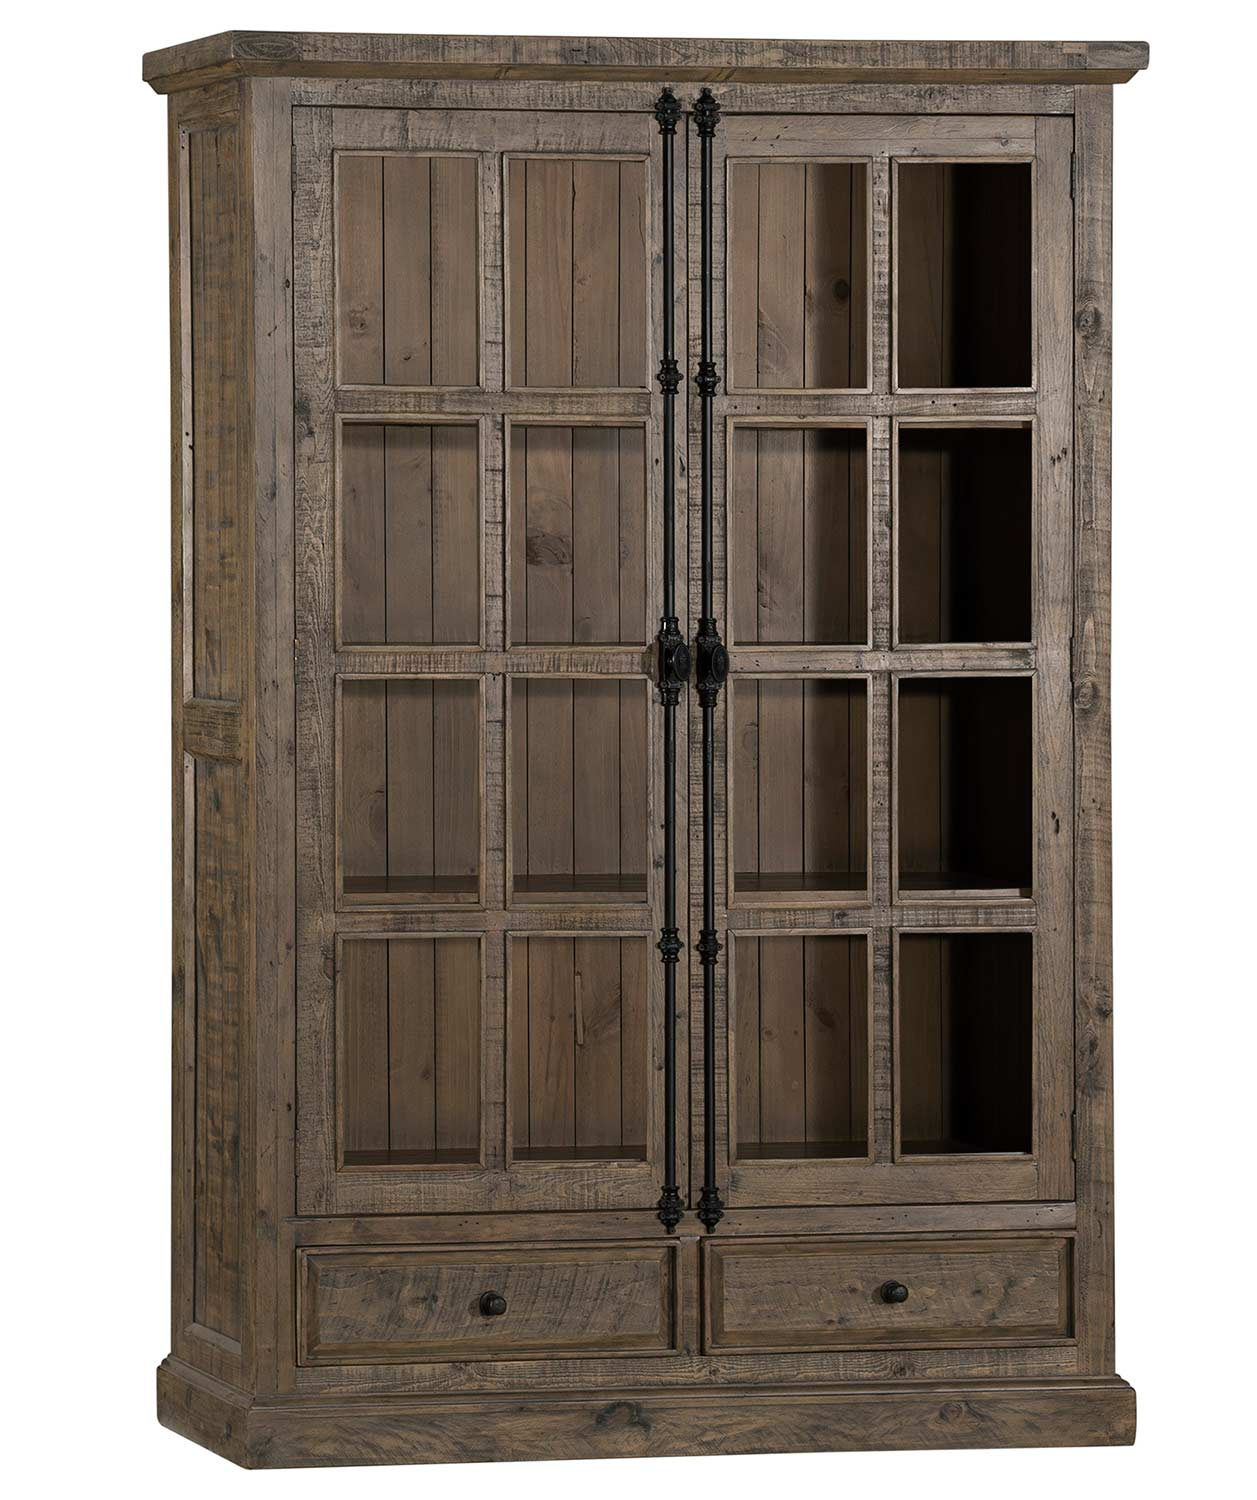 Hillsdale Tuscan Retreat Double Door Cabinet - Aged Gray